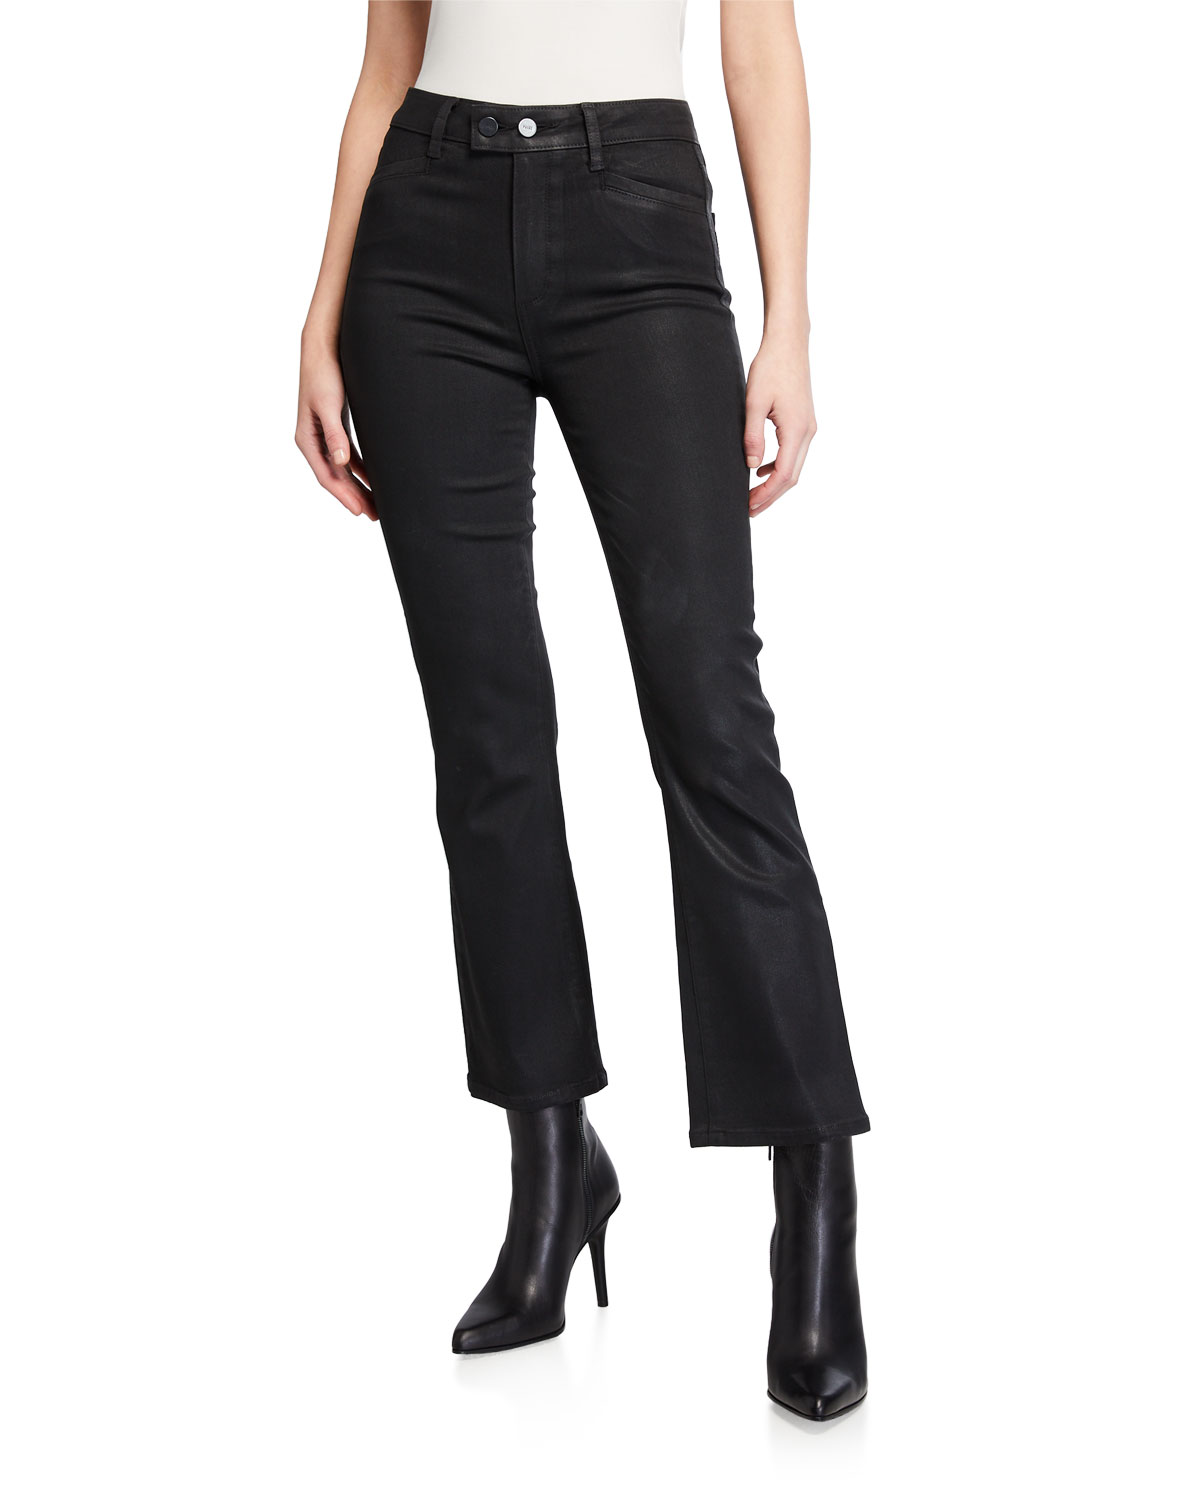 PAIGE Claudine Luxe Coated High-Rise Flare Jeans